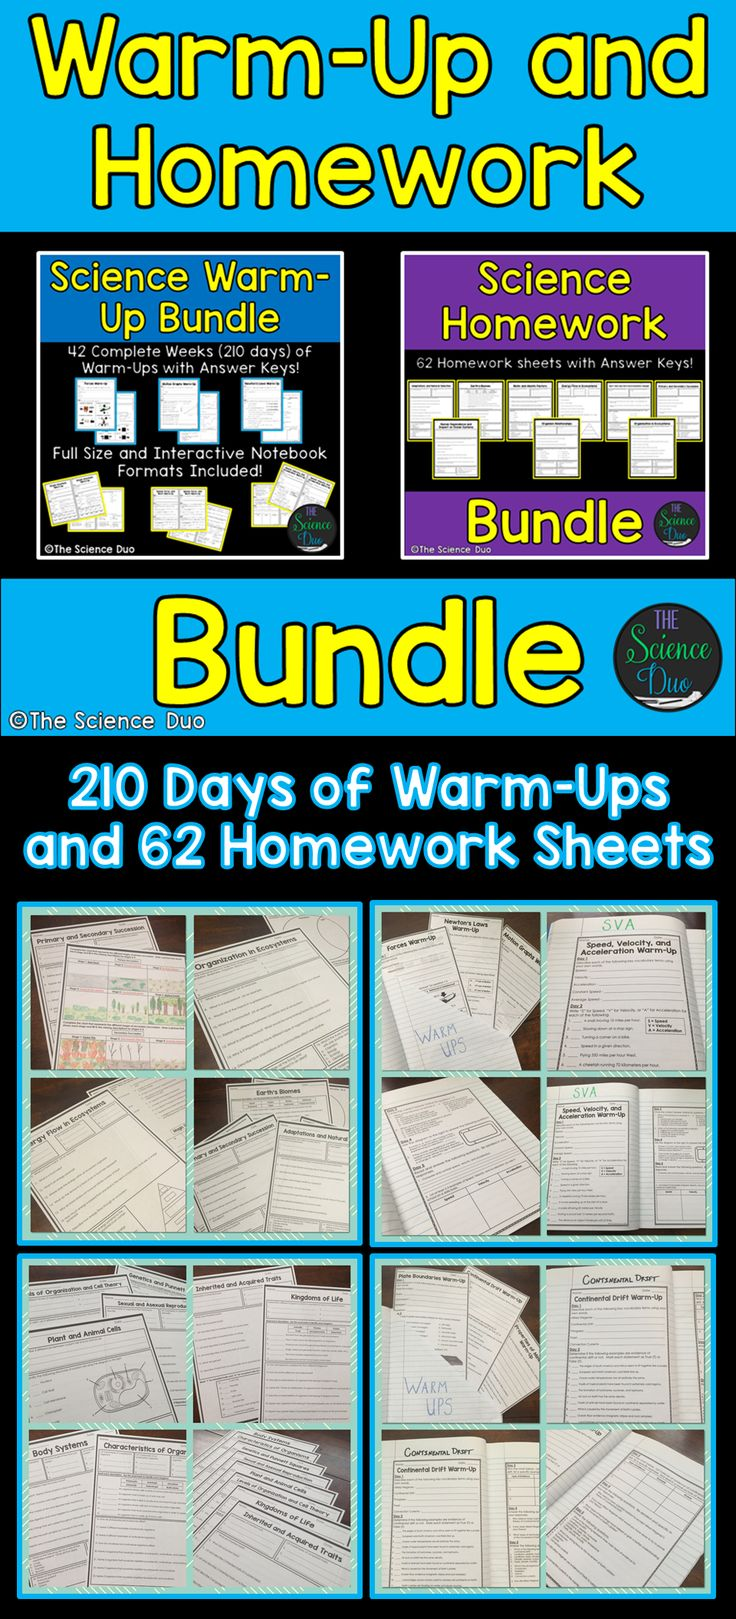 Science Warm-Up and Homework Bundle. This resource contains 210 days (42 weeks) of warm-ups and 62 homework activity sheets.